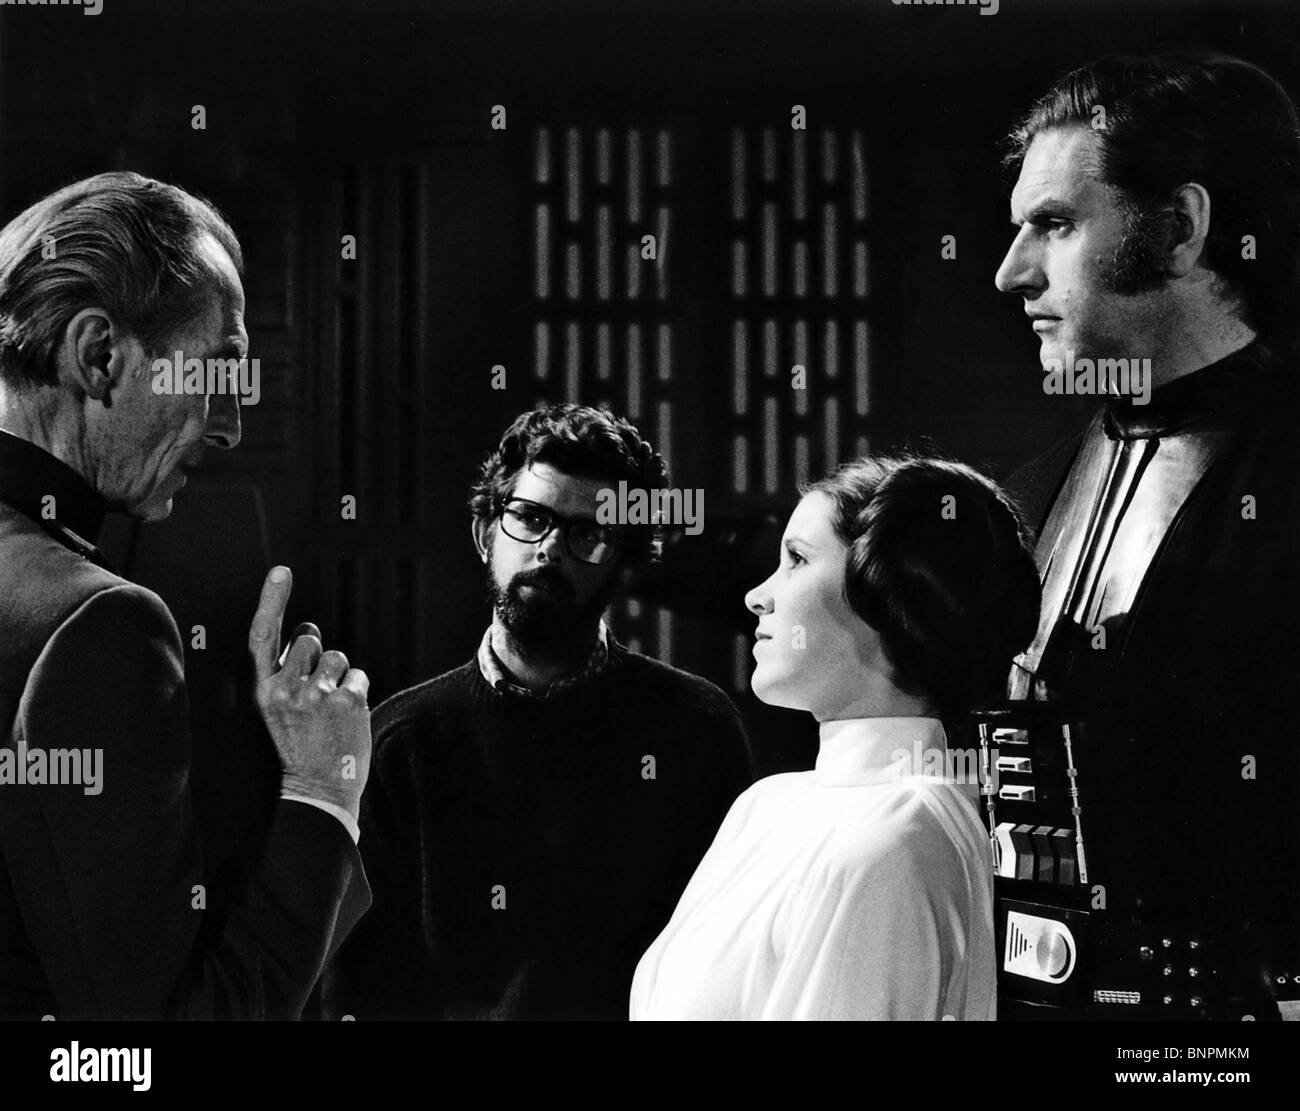 PETER CUSHING GEORGE LUCAS CARRIE FISHER & DAVID PROWSE STAR WARS: EPISODE IV - A NEW HOPE (1977) - Stock Image